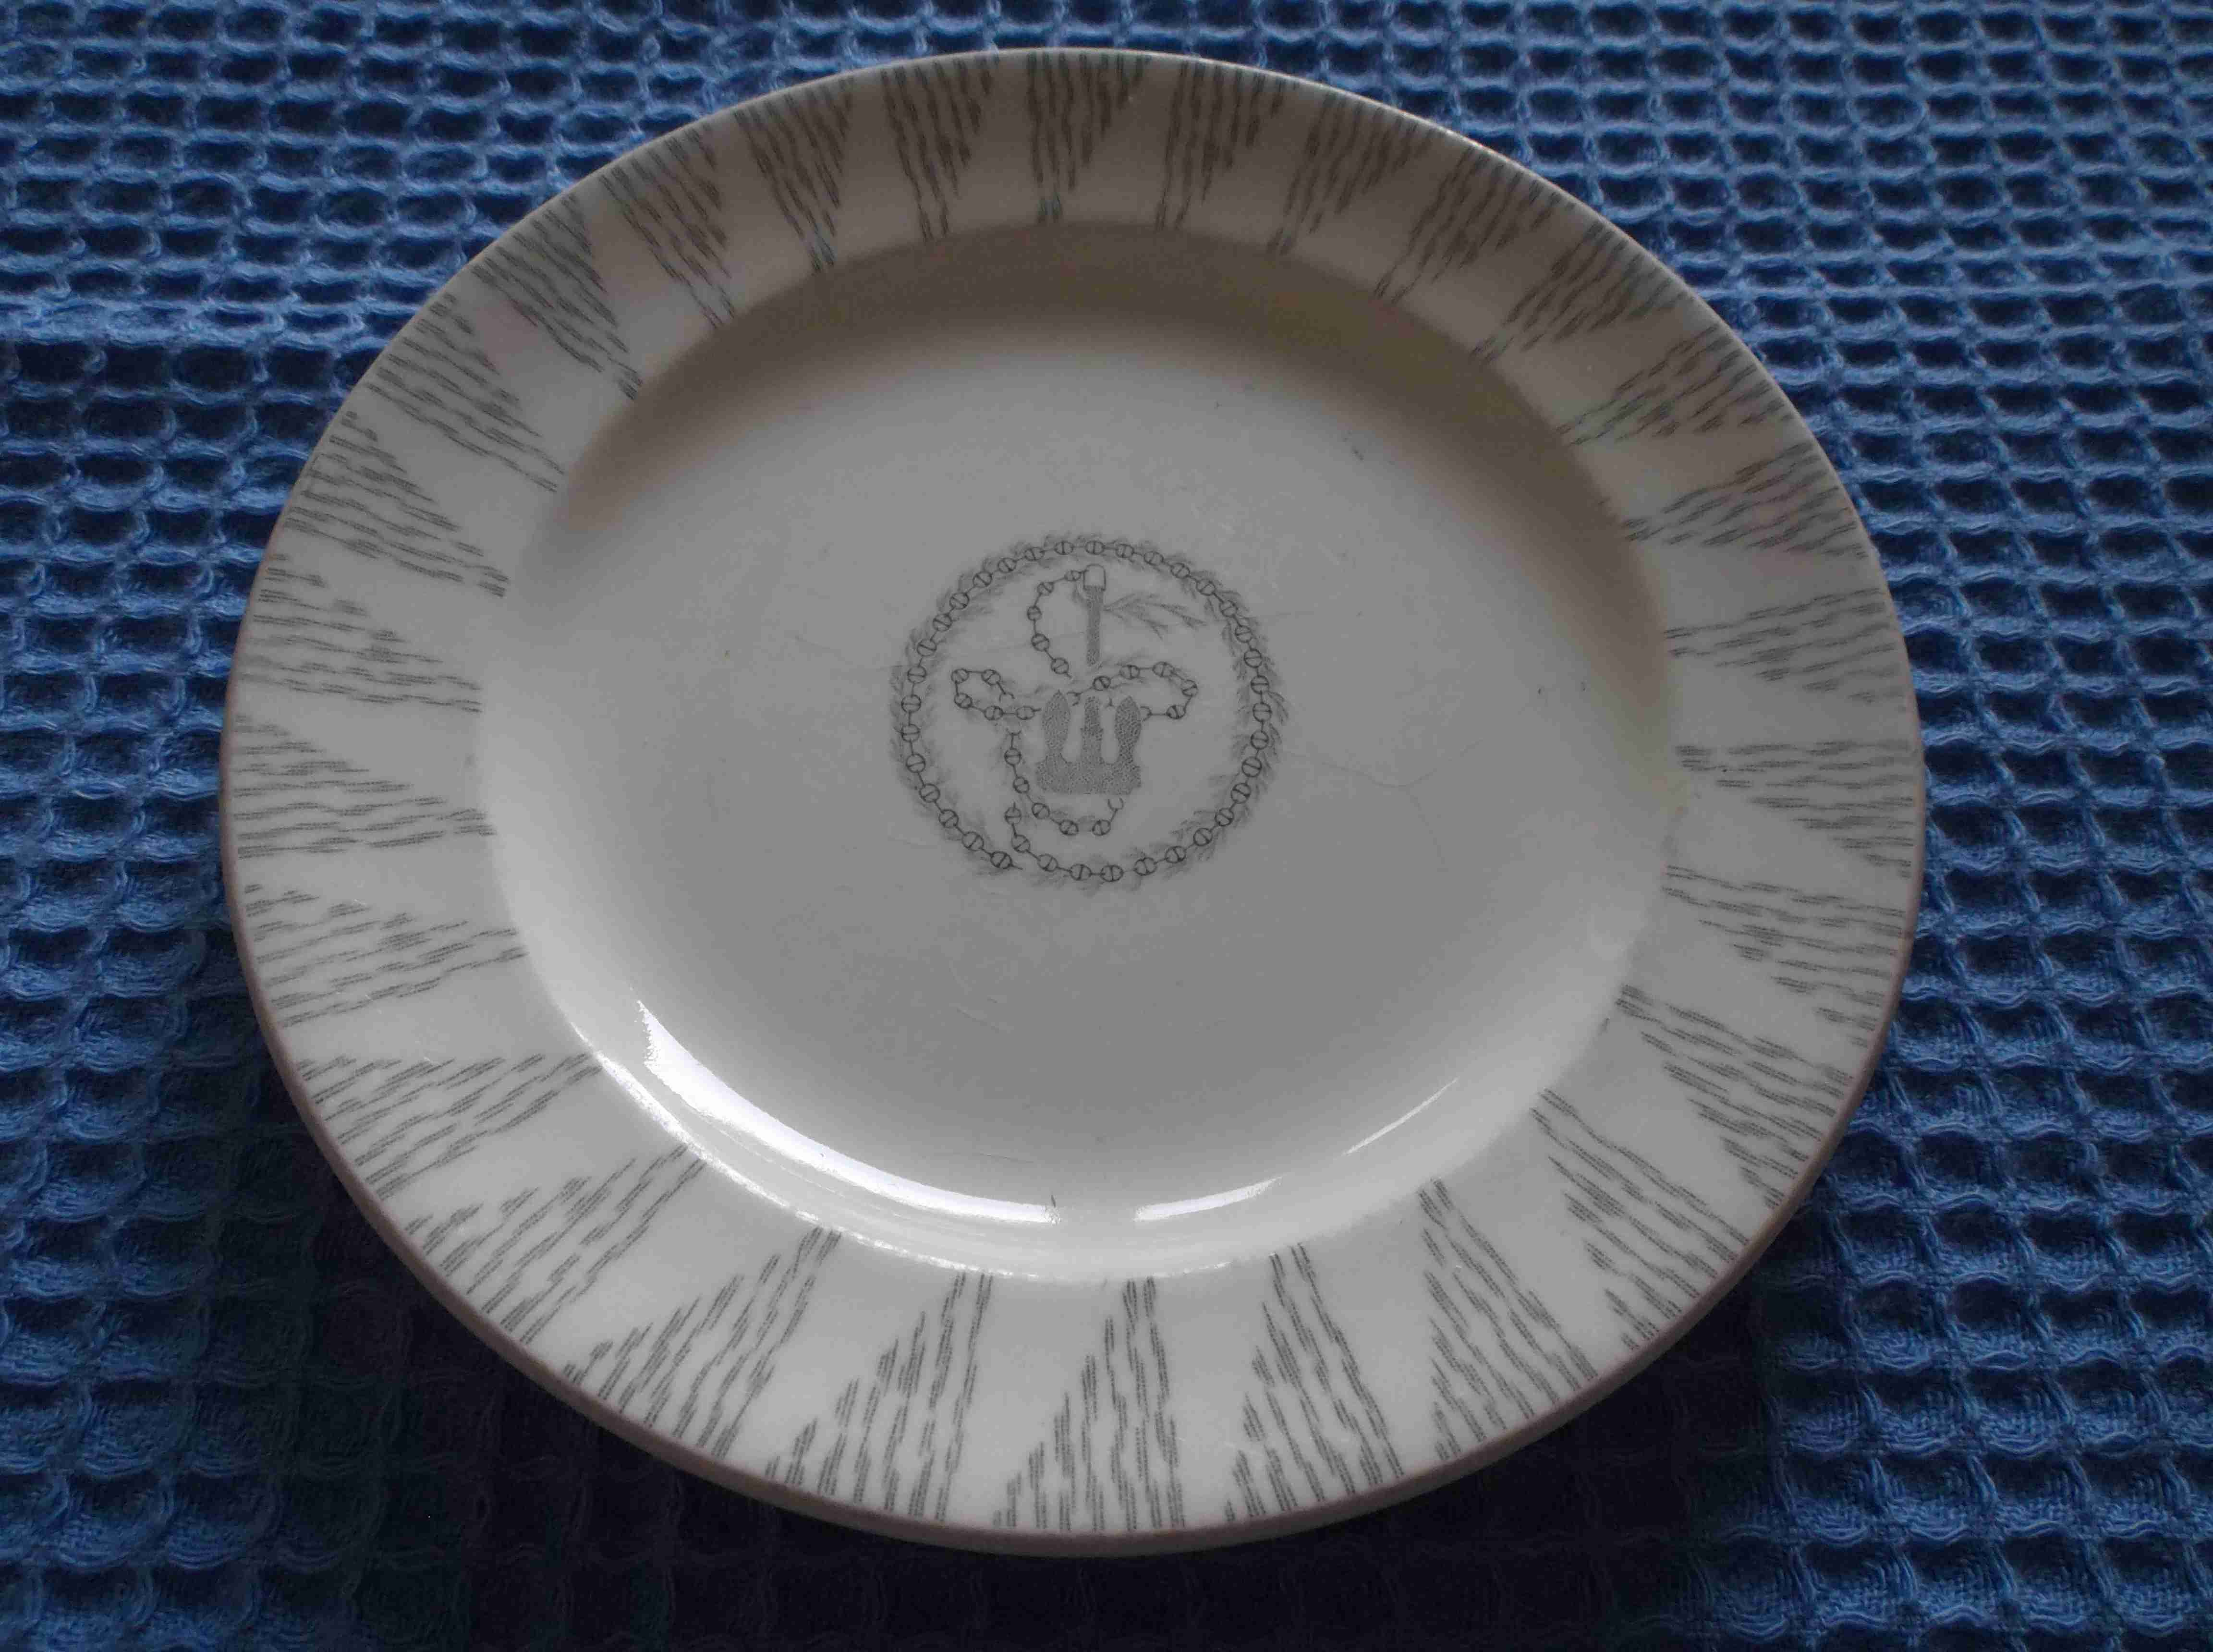 AS USED IN SERVICE ORIENT LINE SHIPPING COMPANY DINING PLATE